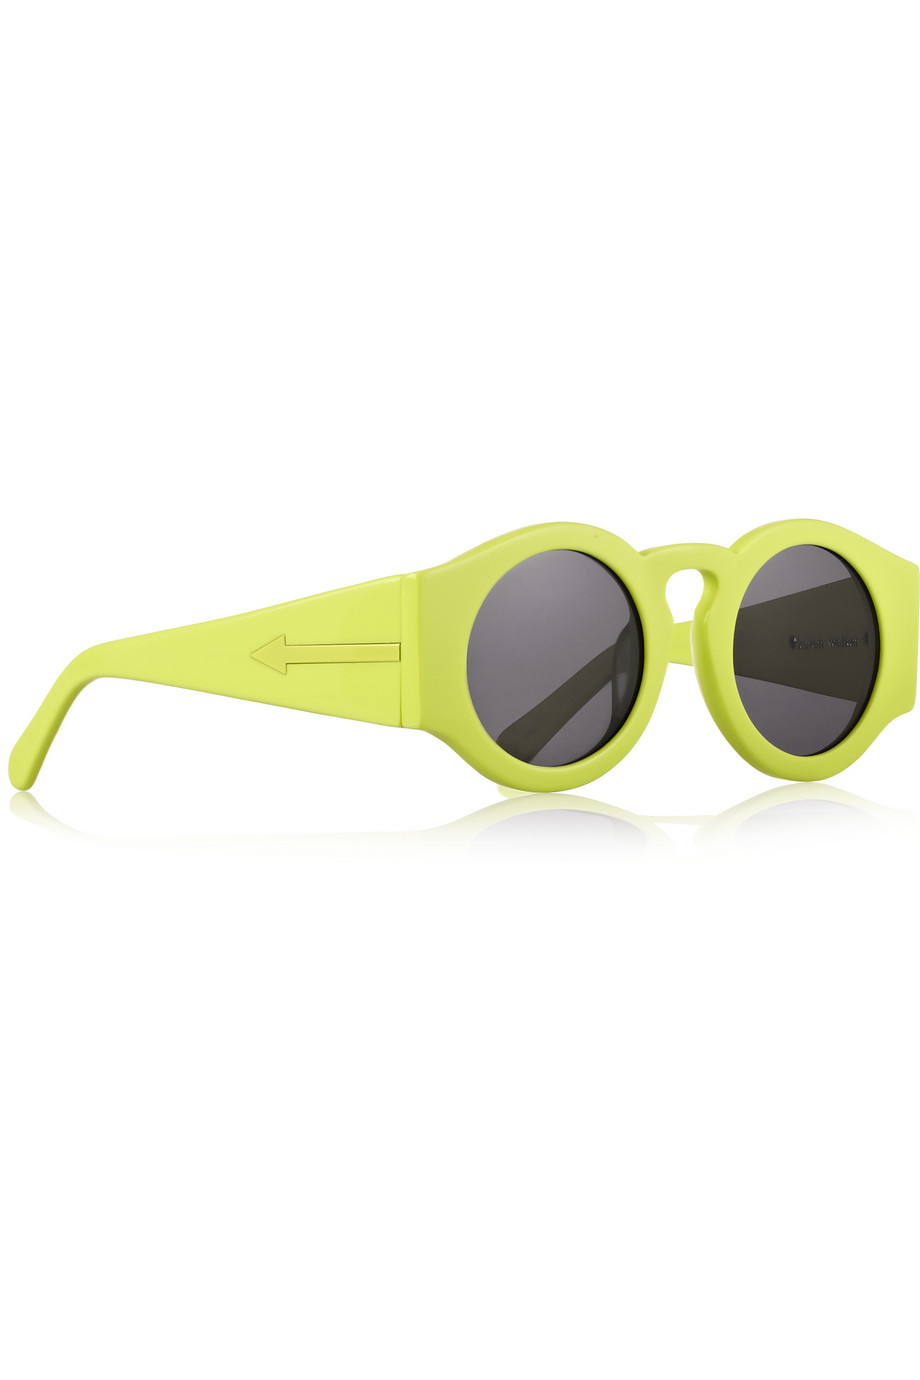 Lyst - Finds Blue Moon Round-frame Neon Acetate Sunglasses in Yellow